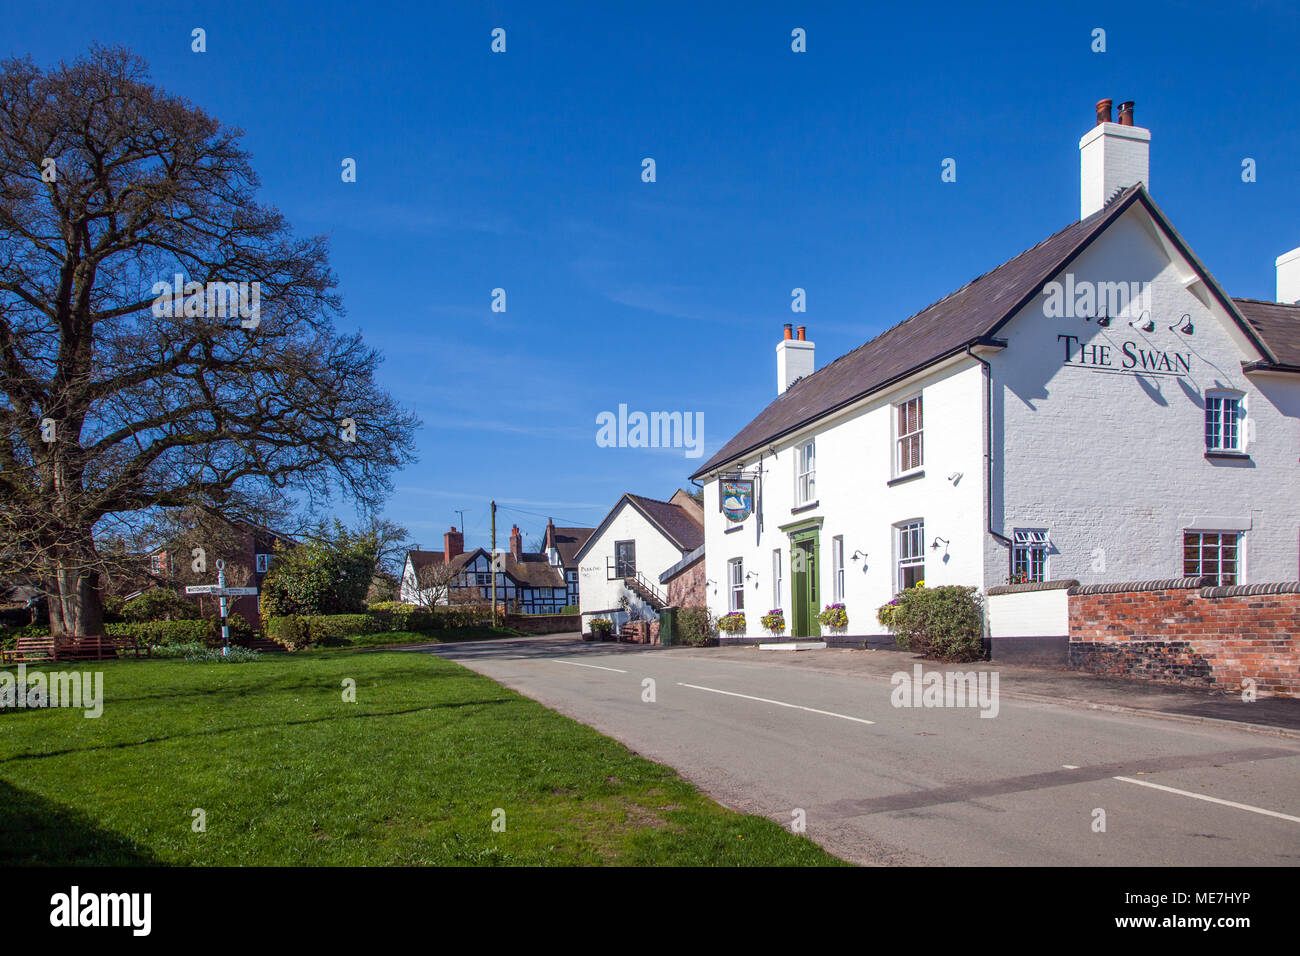 The village green and the Swan inn / public house at the South Cheshire rural countryside village of Marbury with black and white half timbered houses - Stock Image